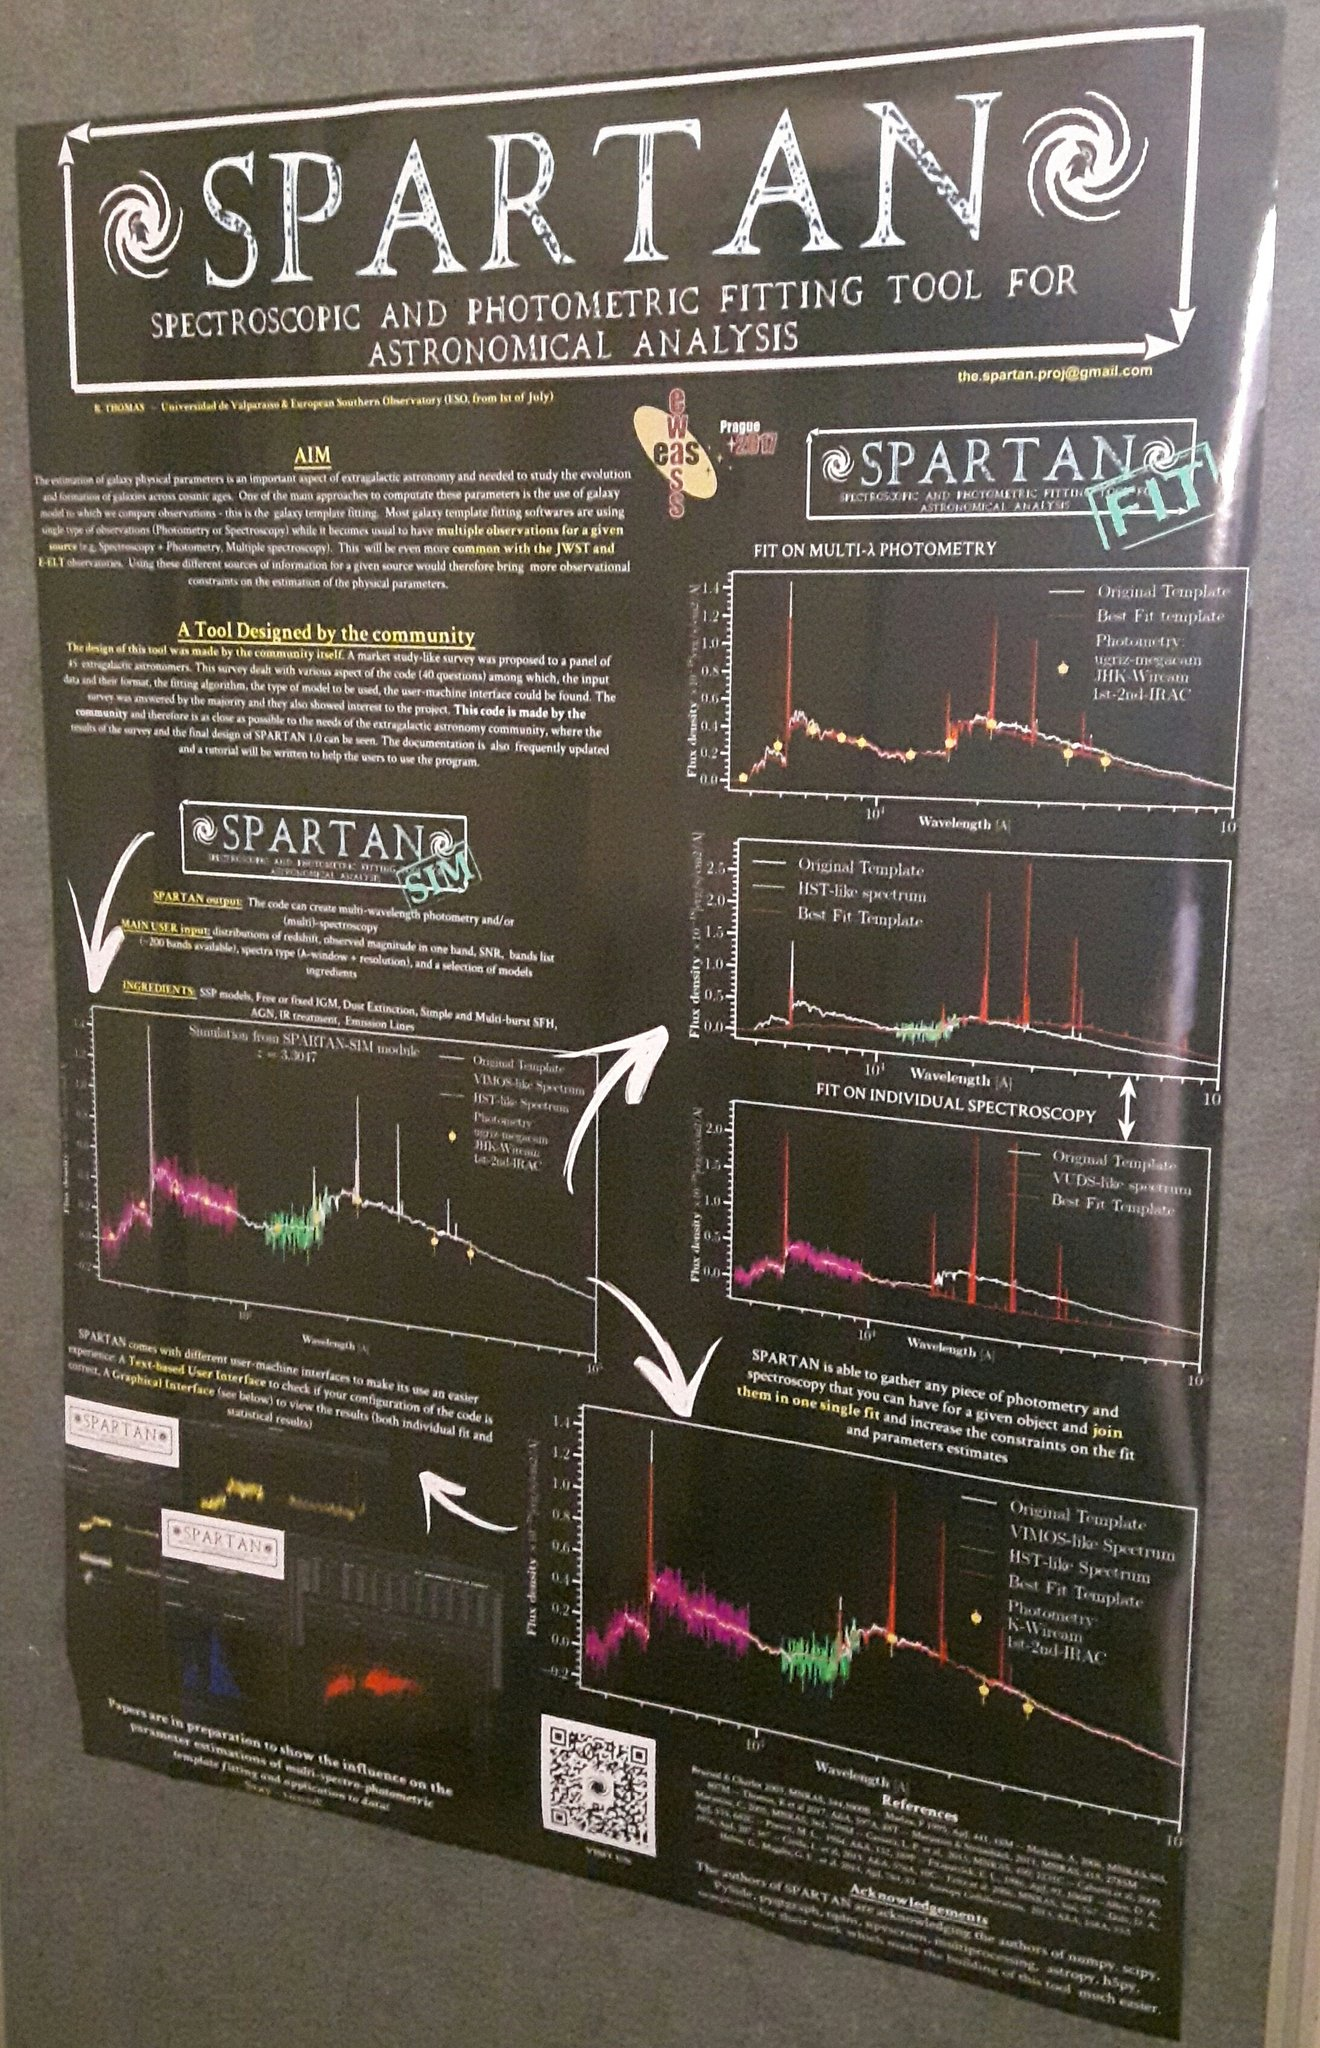 R Thomas: SPARTAN, maximizing the use of astronomical data in template fitting #ewass2017 https://t.co/BVVnkWdcAm